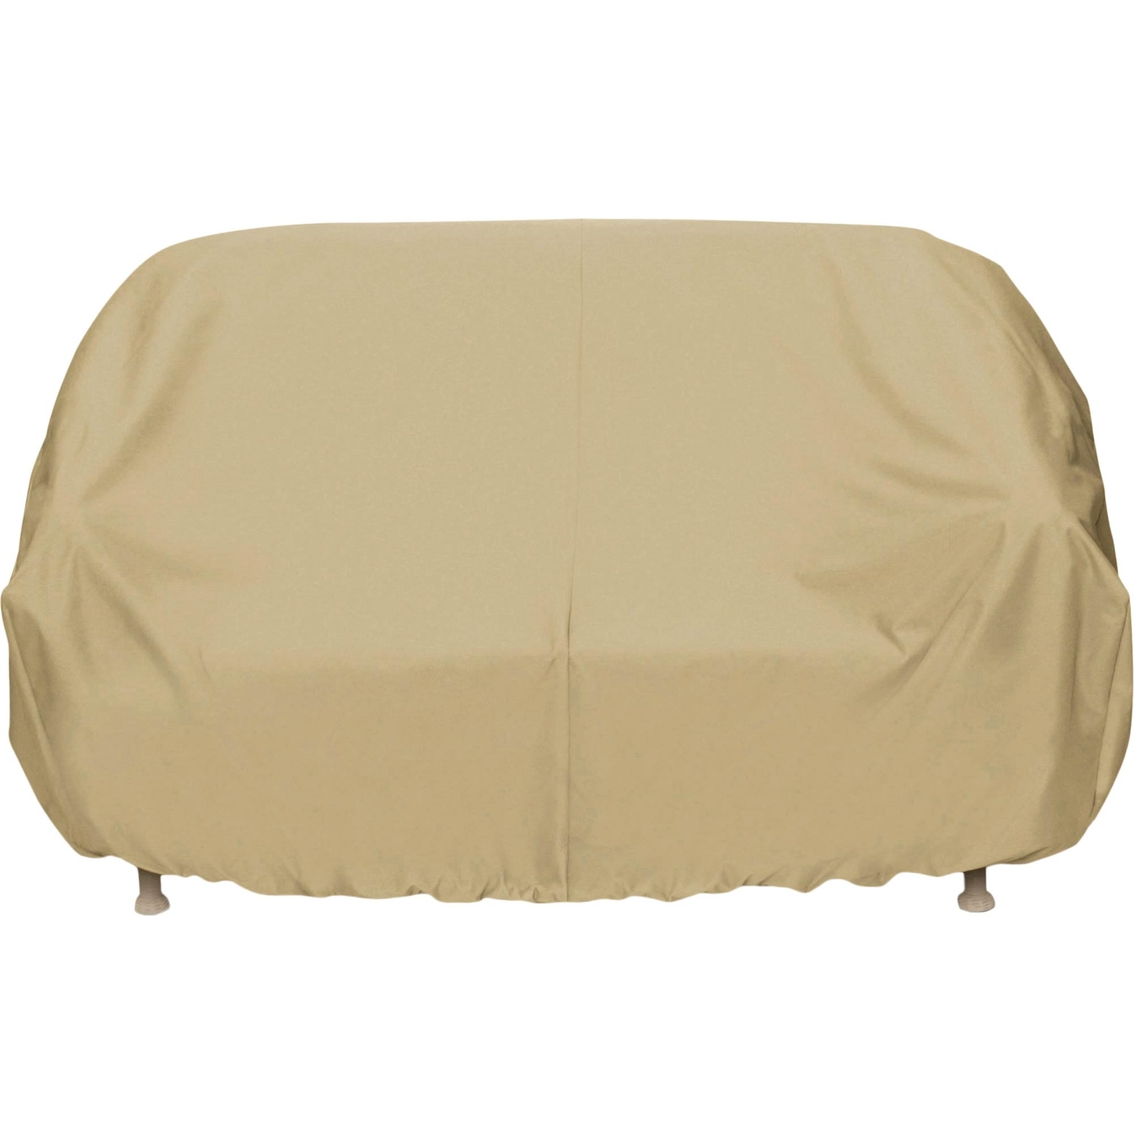 Sofa Covers Oversized: Smart Living Oversized Sofa Cover